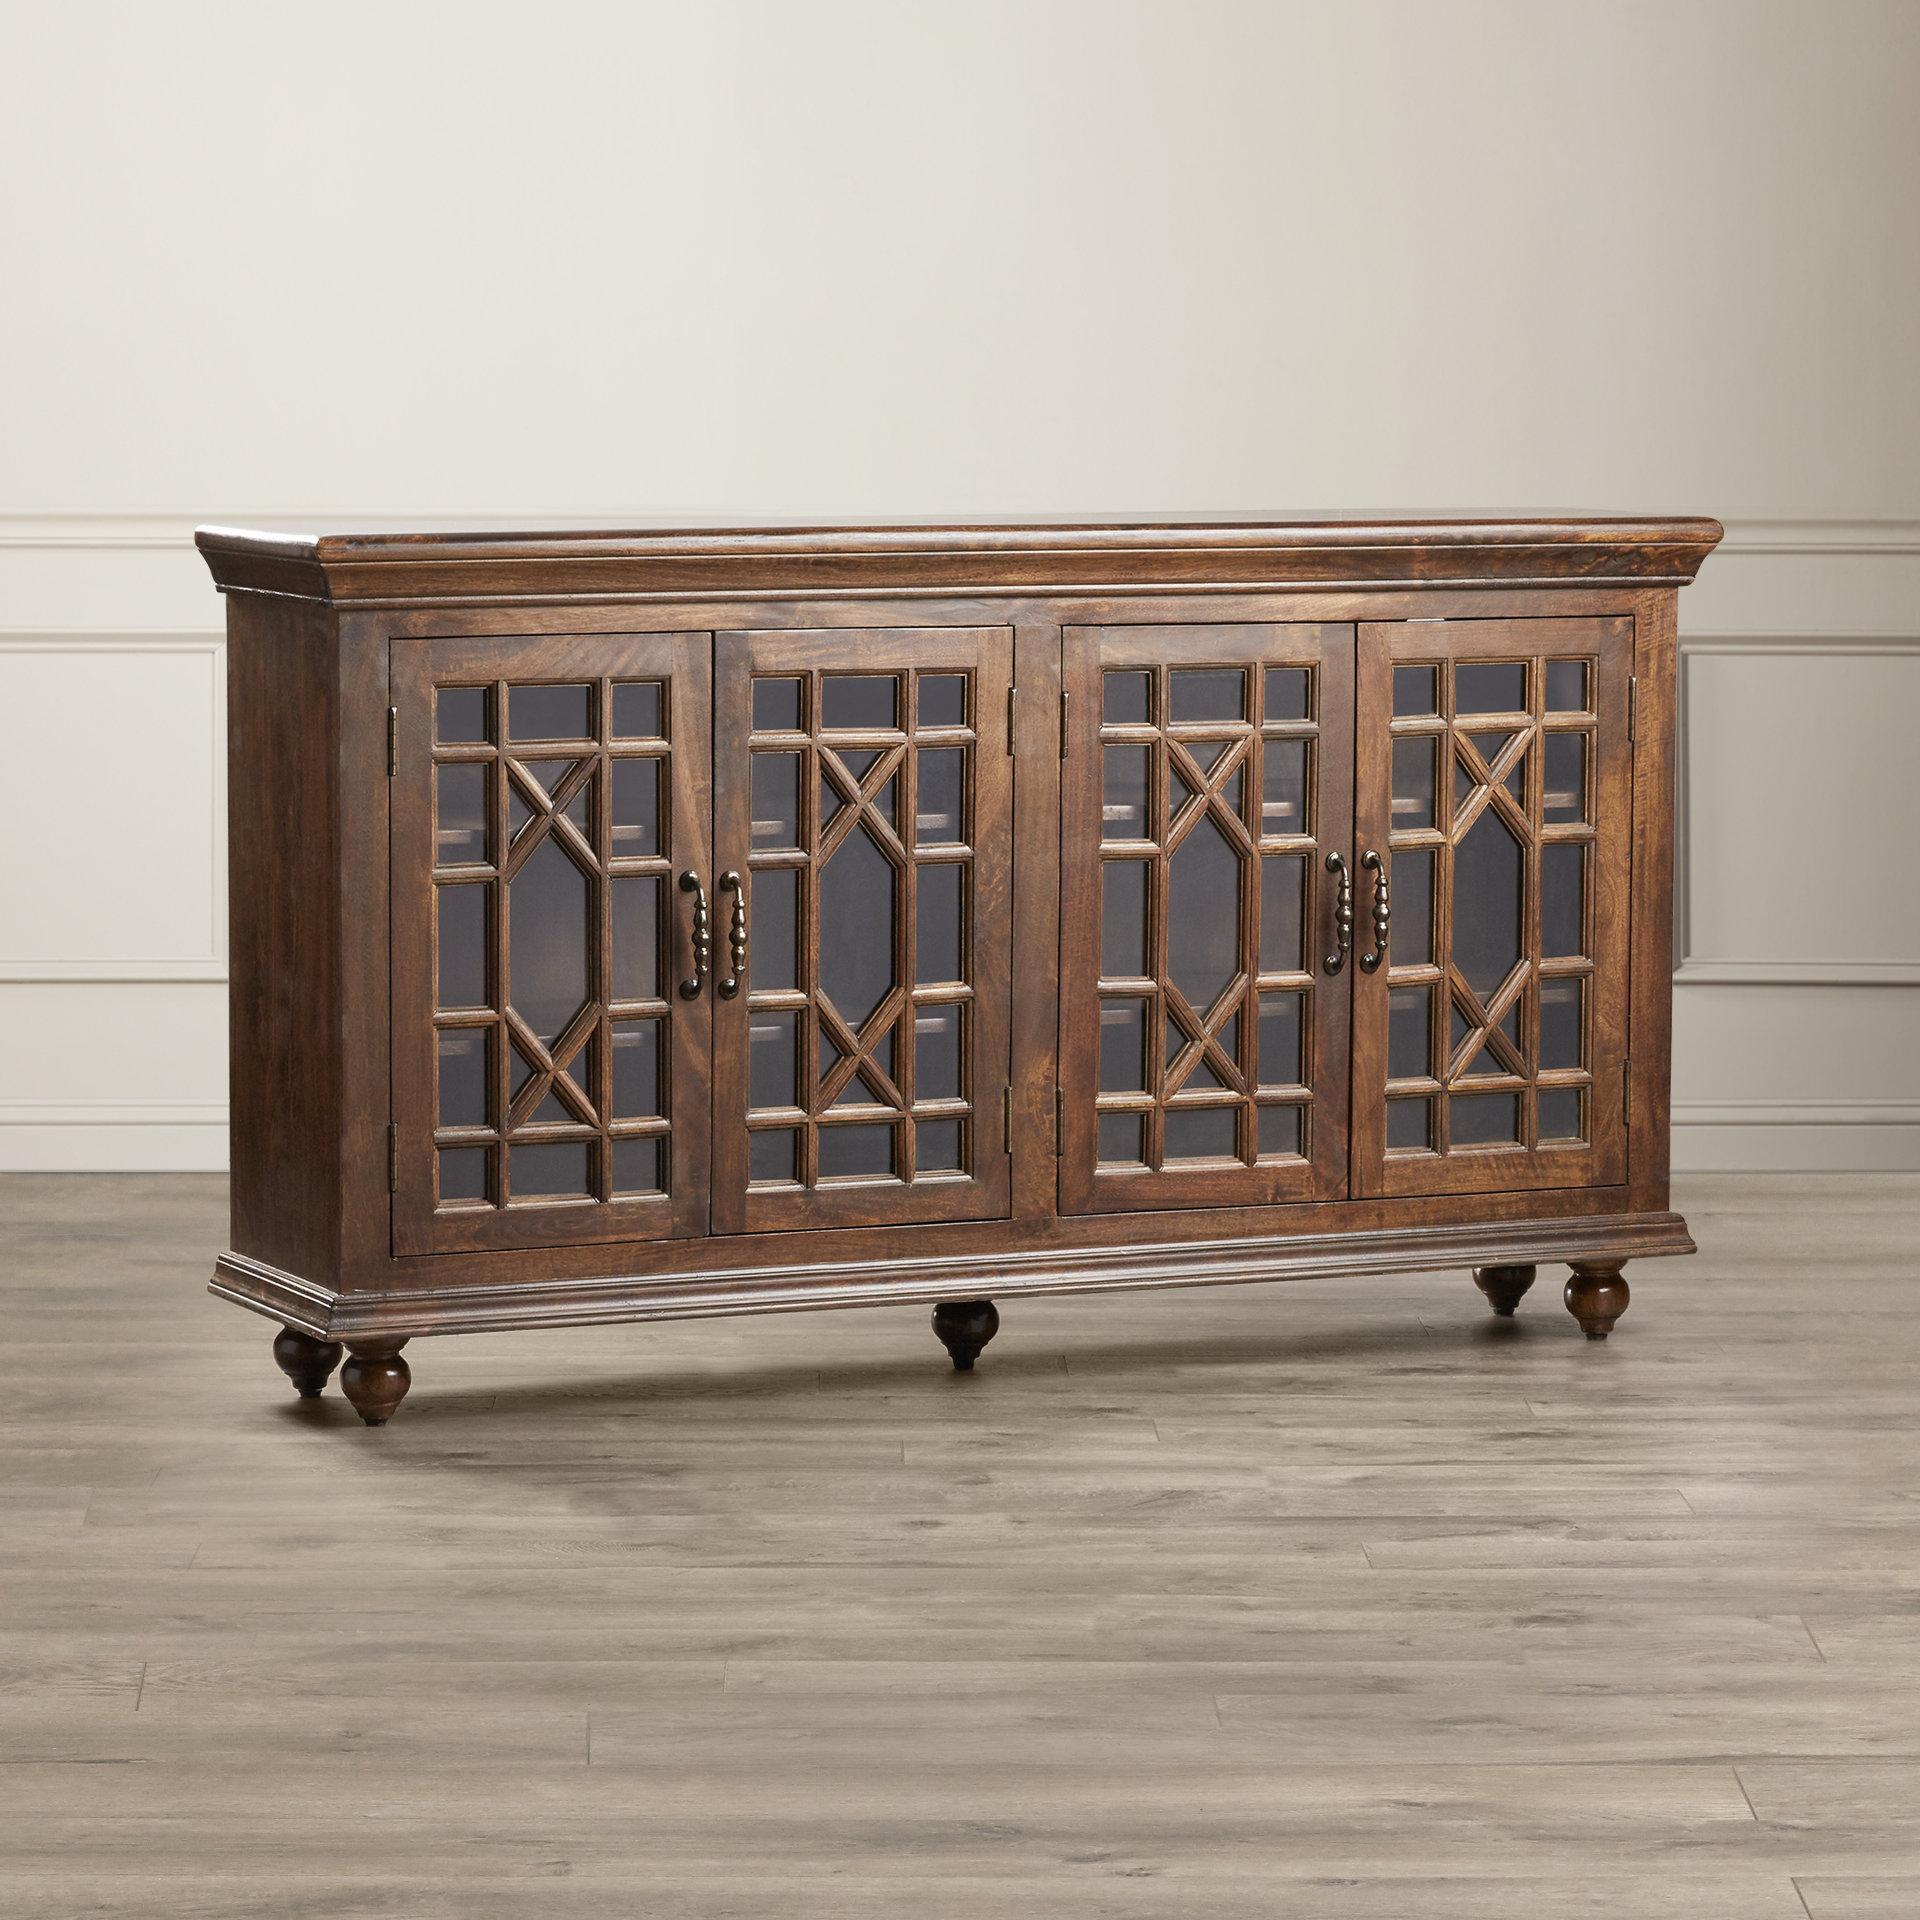 Farmhouse & Rustic Darby Home Co Sideboards & Buffets With Phyllis Sideboards (View 11 of 20)